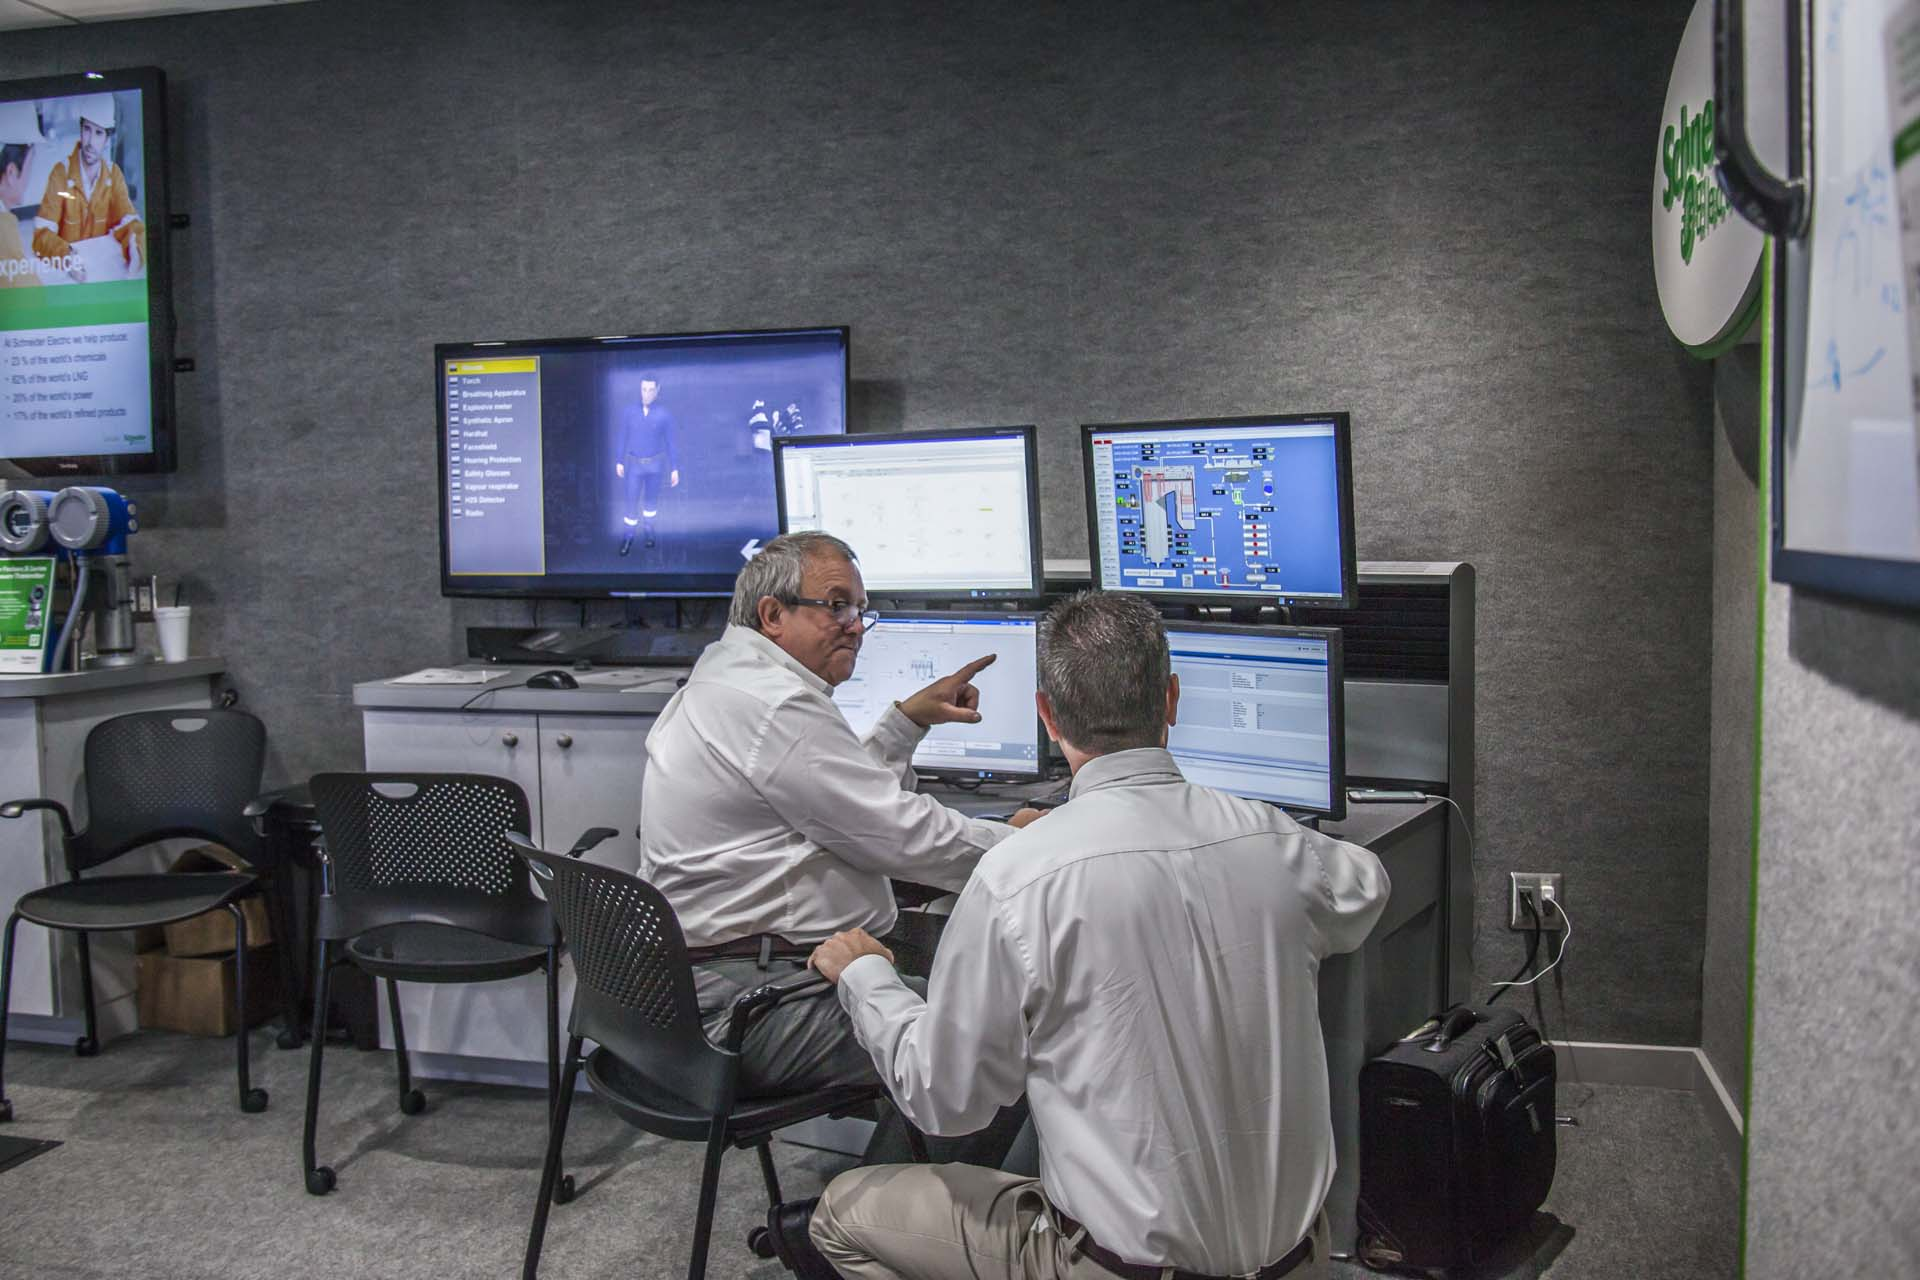 Engineers used computers in the Schneider Electric trailer to discuss new process simulation tools and the future of plant technology.